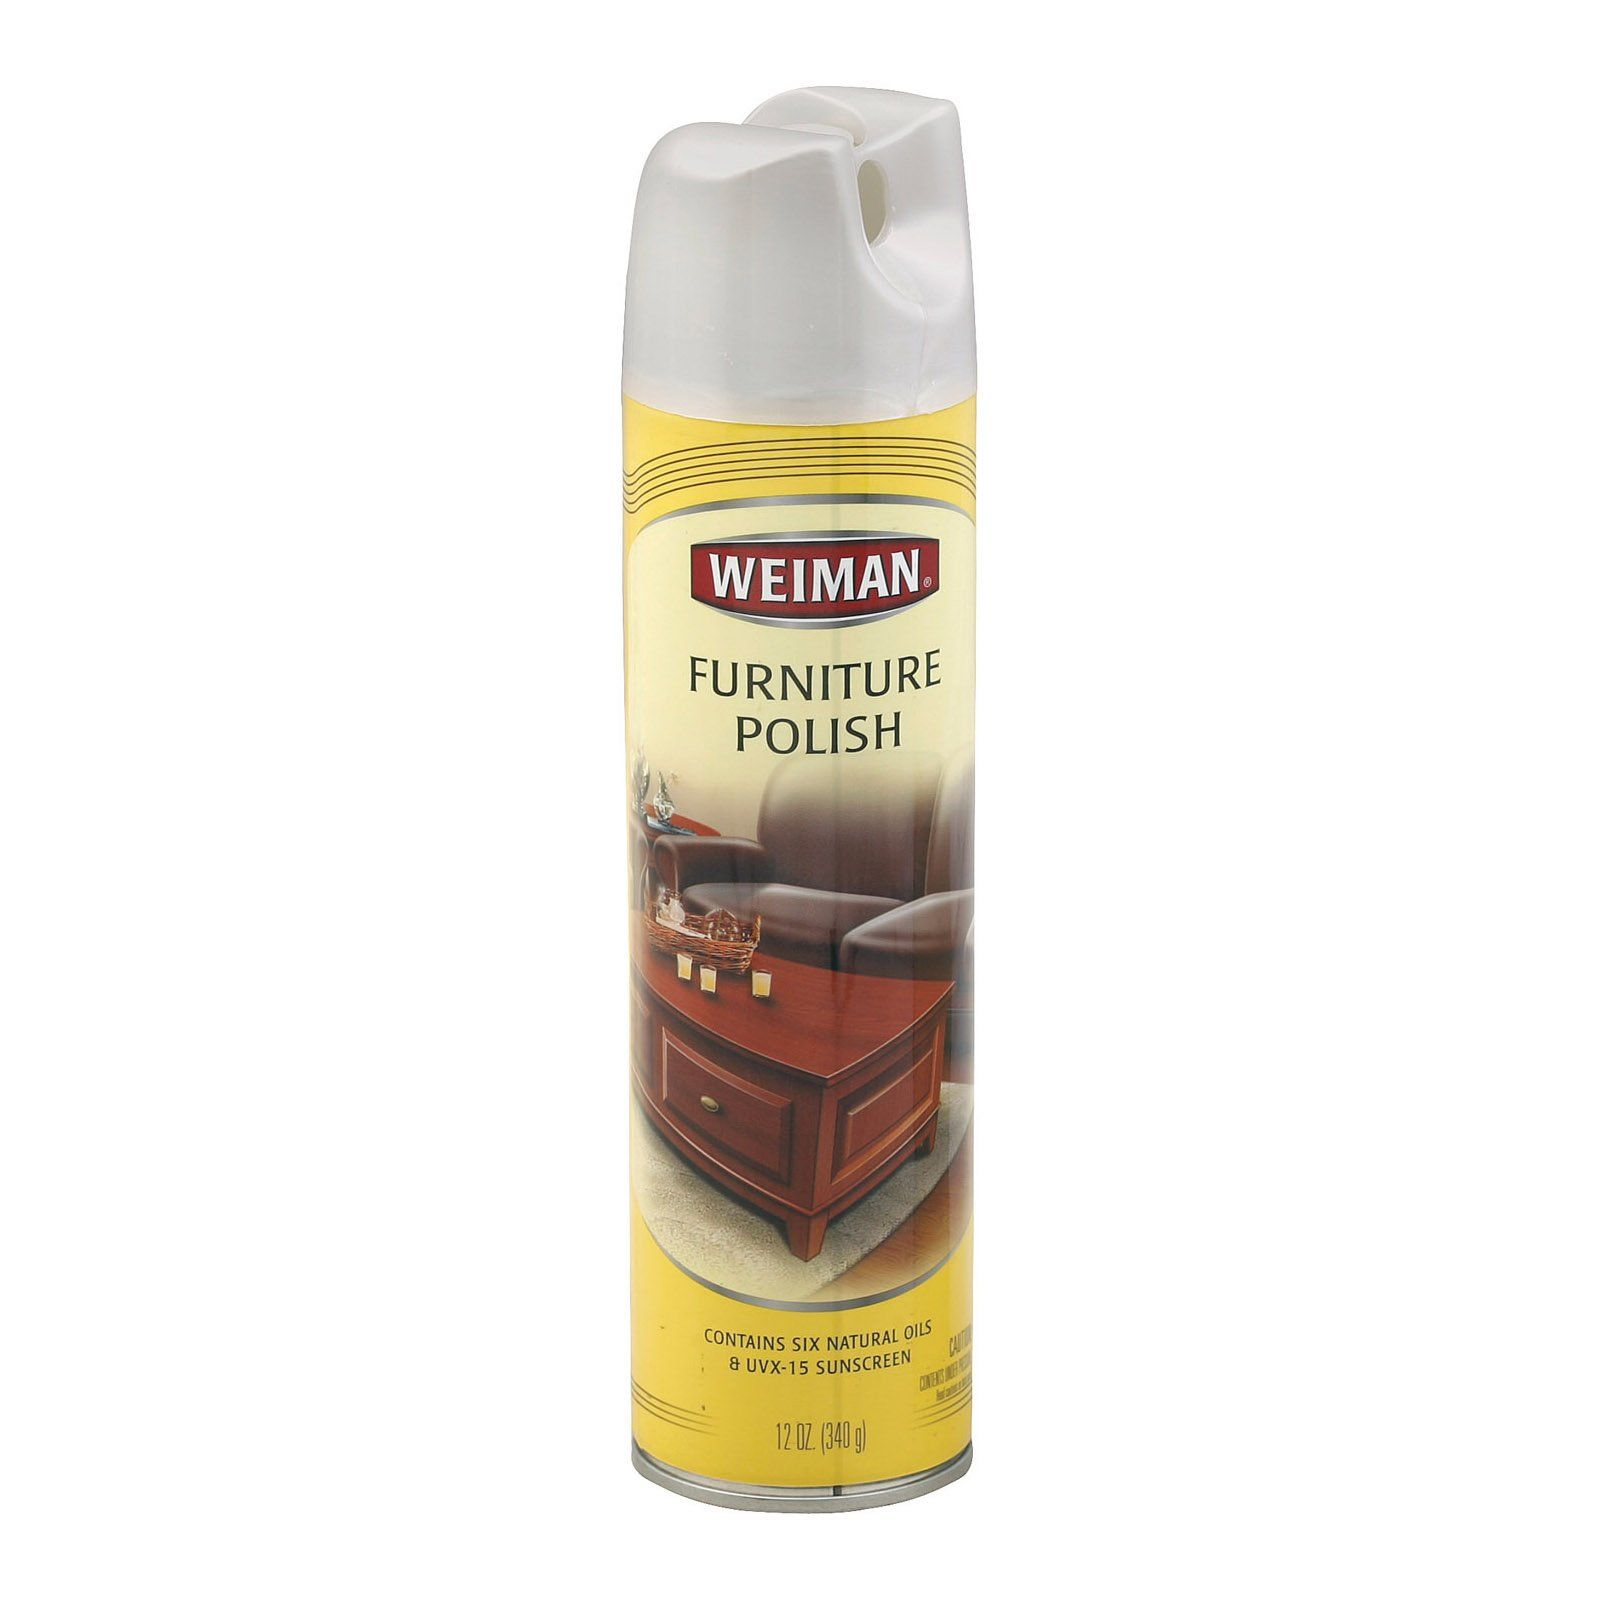 Weiman Furniture Polish Lemon Spray